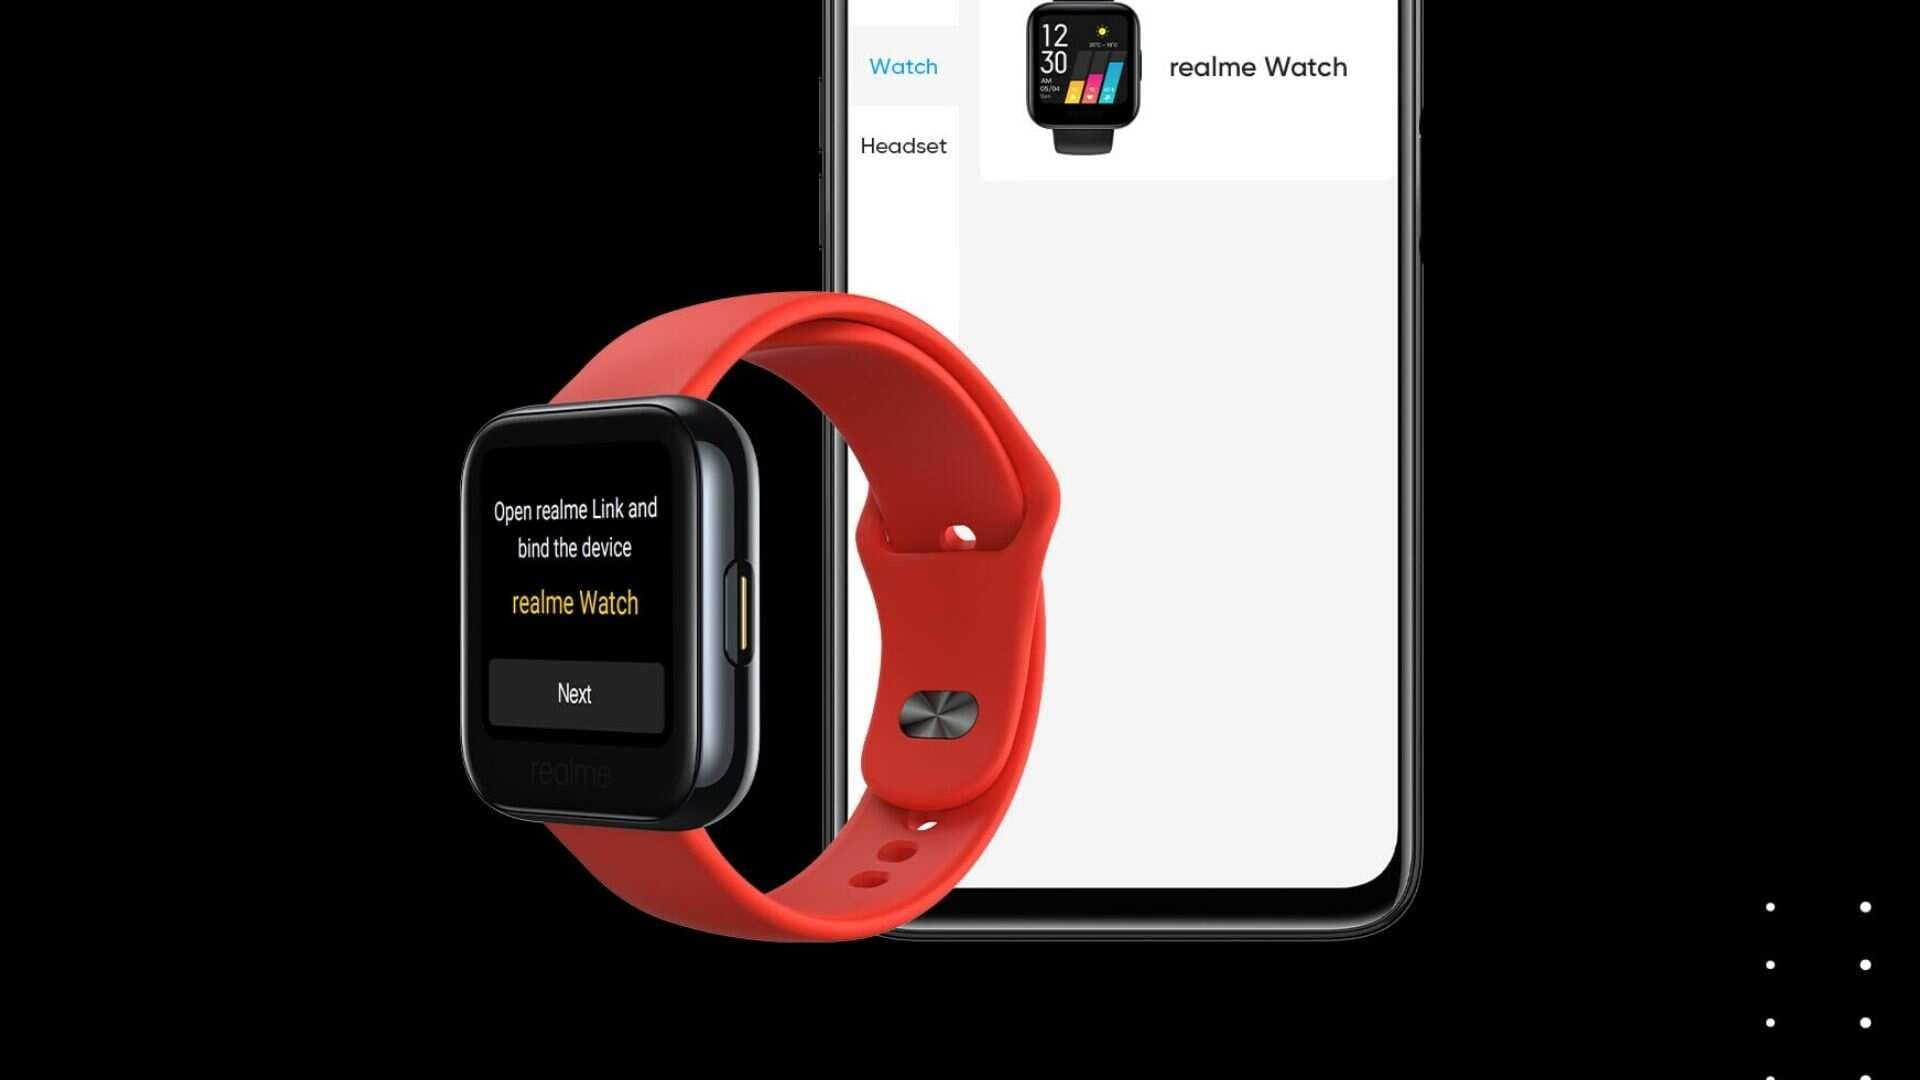 Realme Watch works with the Realme Link app.